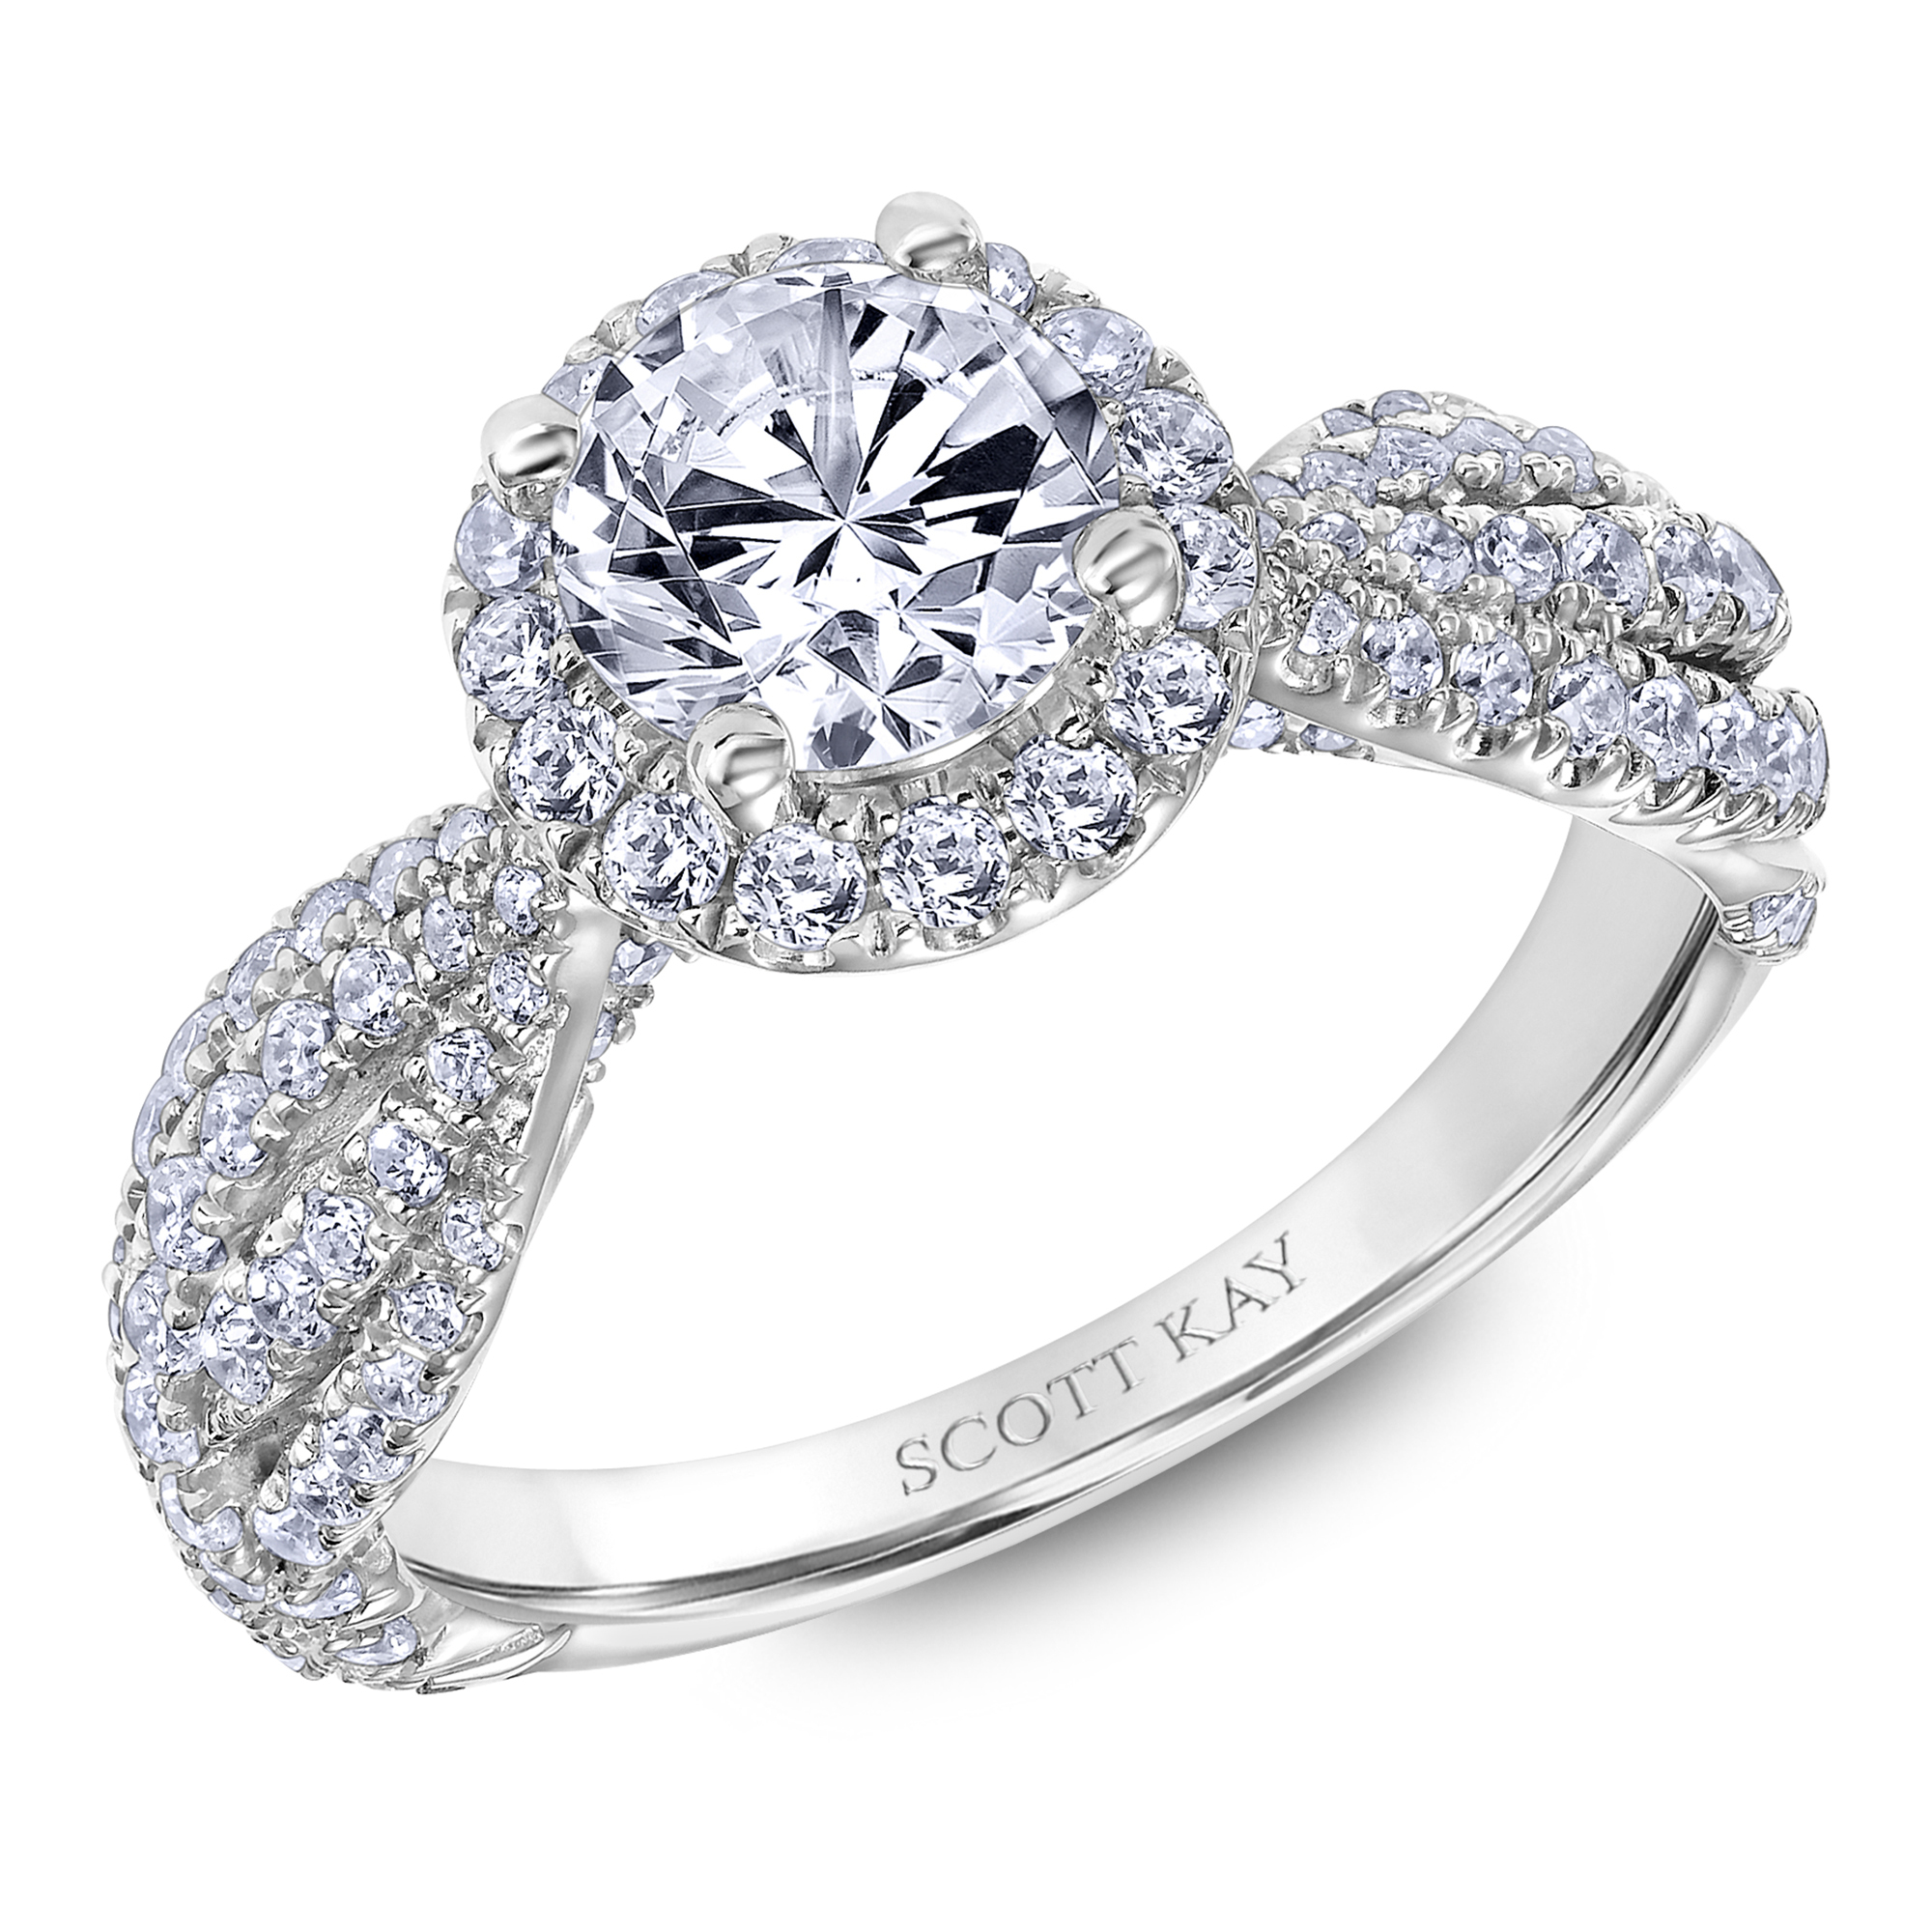 private rings scott collection pc golden the tulip engagement kay products jasmine